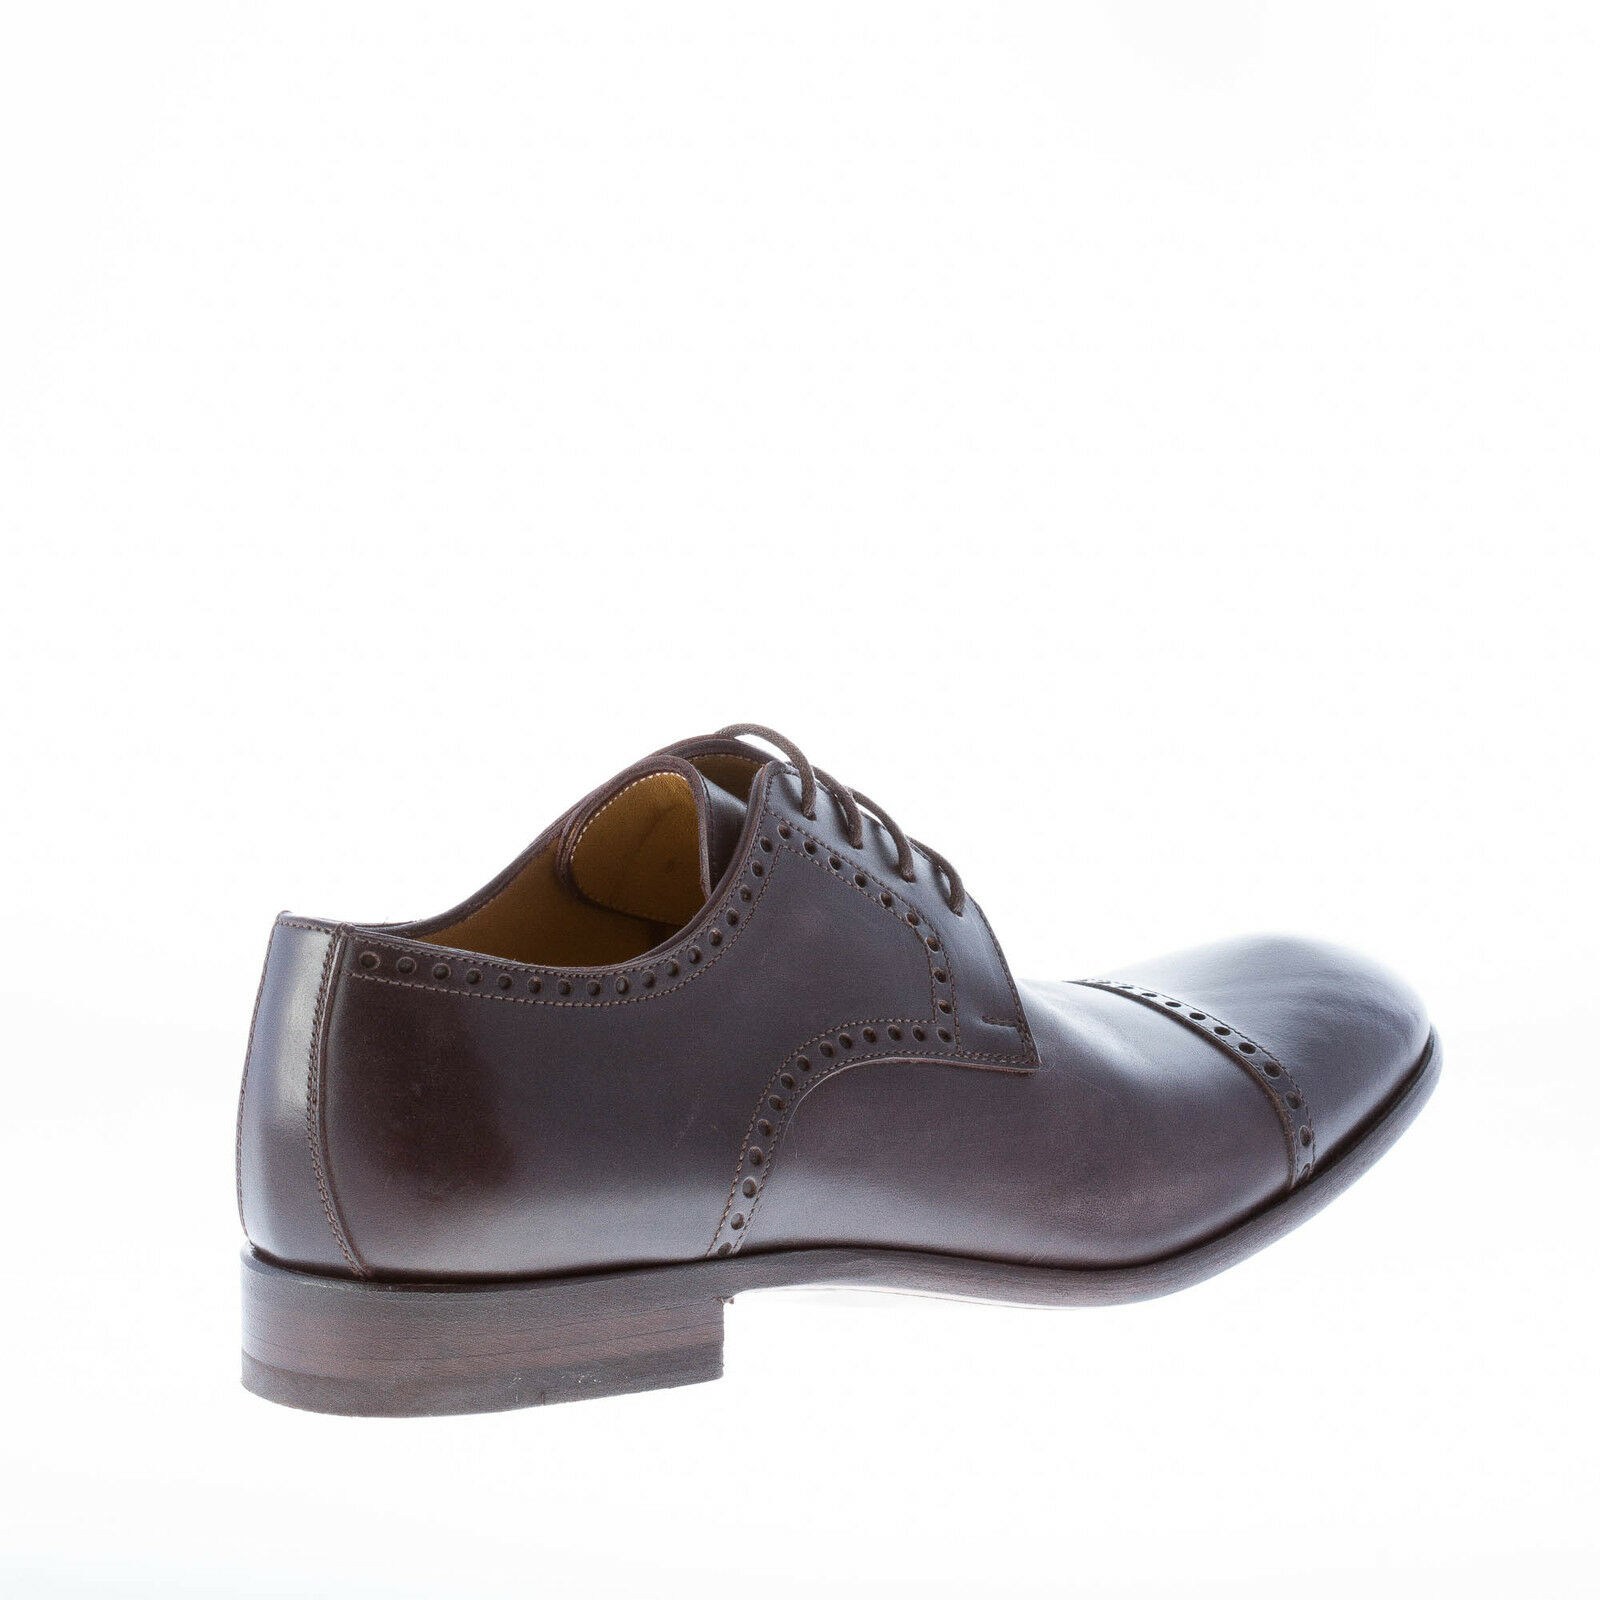 MIGLIORE herren schuhe made in Italy Dark brown leather derby perforated cap toe